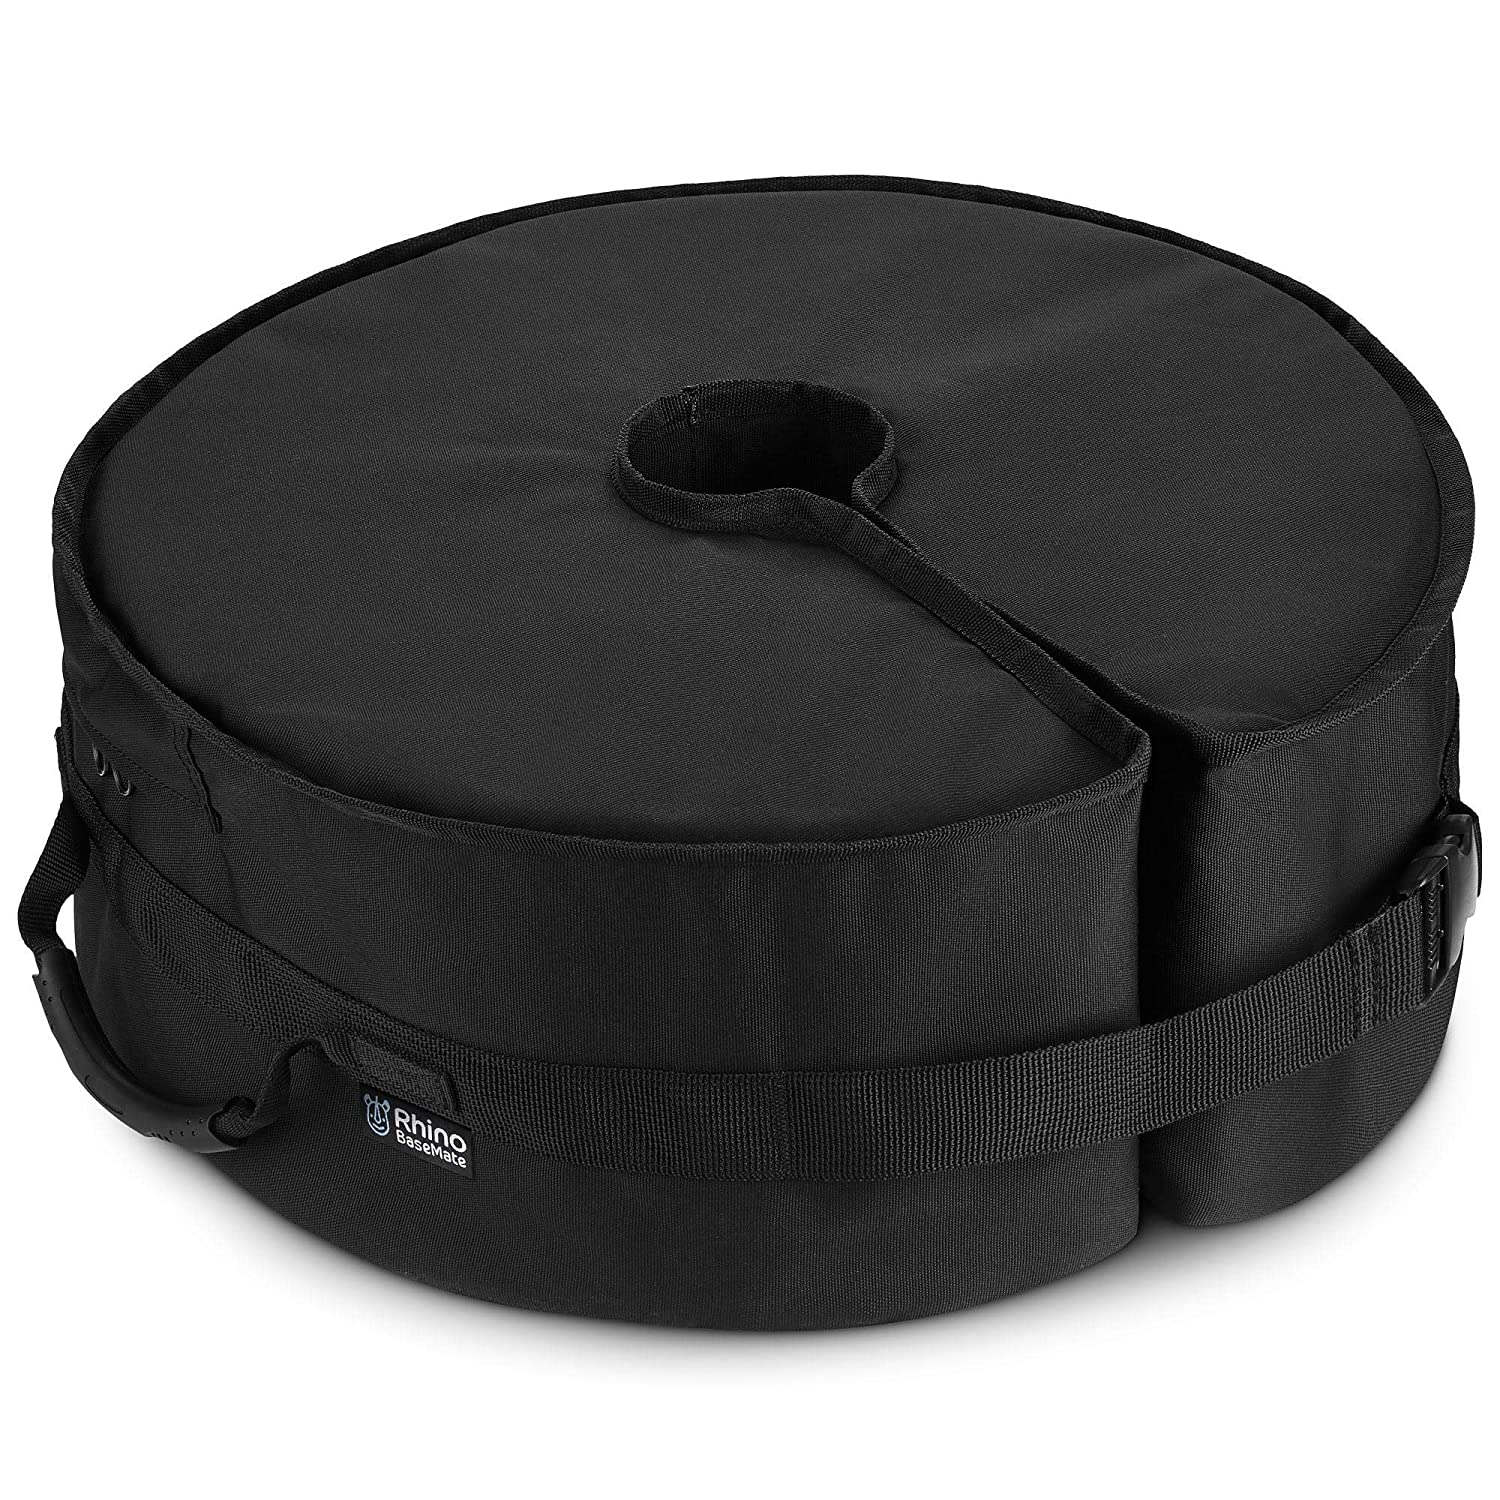 Rhino Round Umbrella Base Weight with Side Slot Opening, 18 Fits Any Offset, Cantilever Any Outdoor Patio Umbrella Stand Easy Set up Black